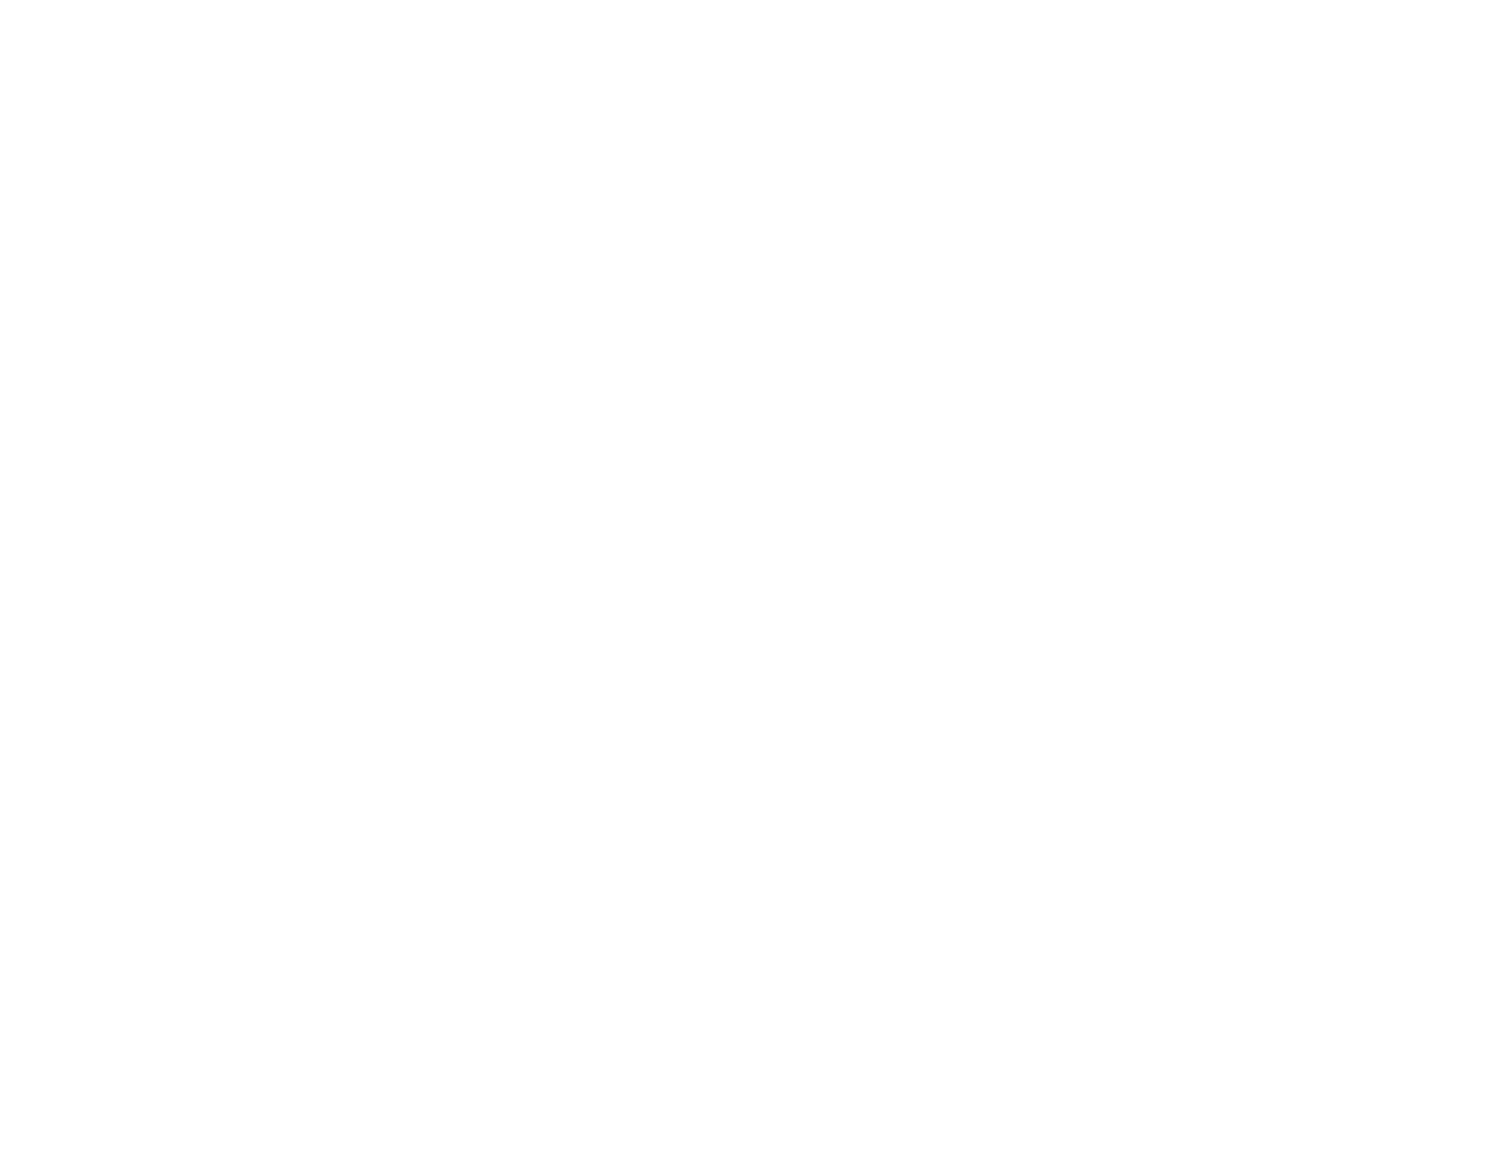 The Deep Well Podcast